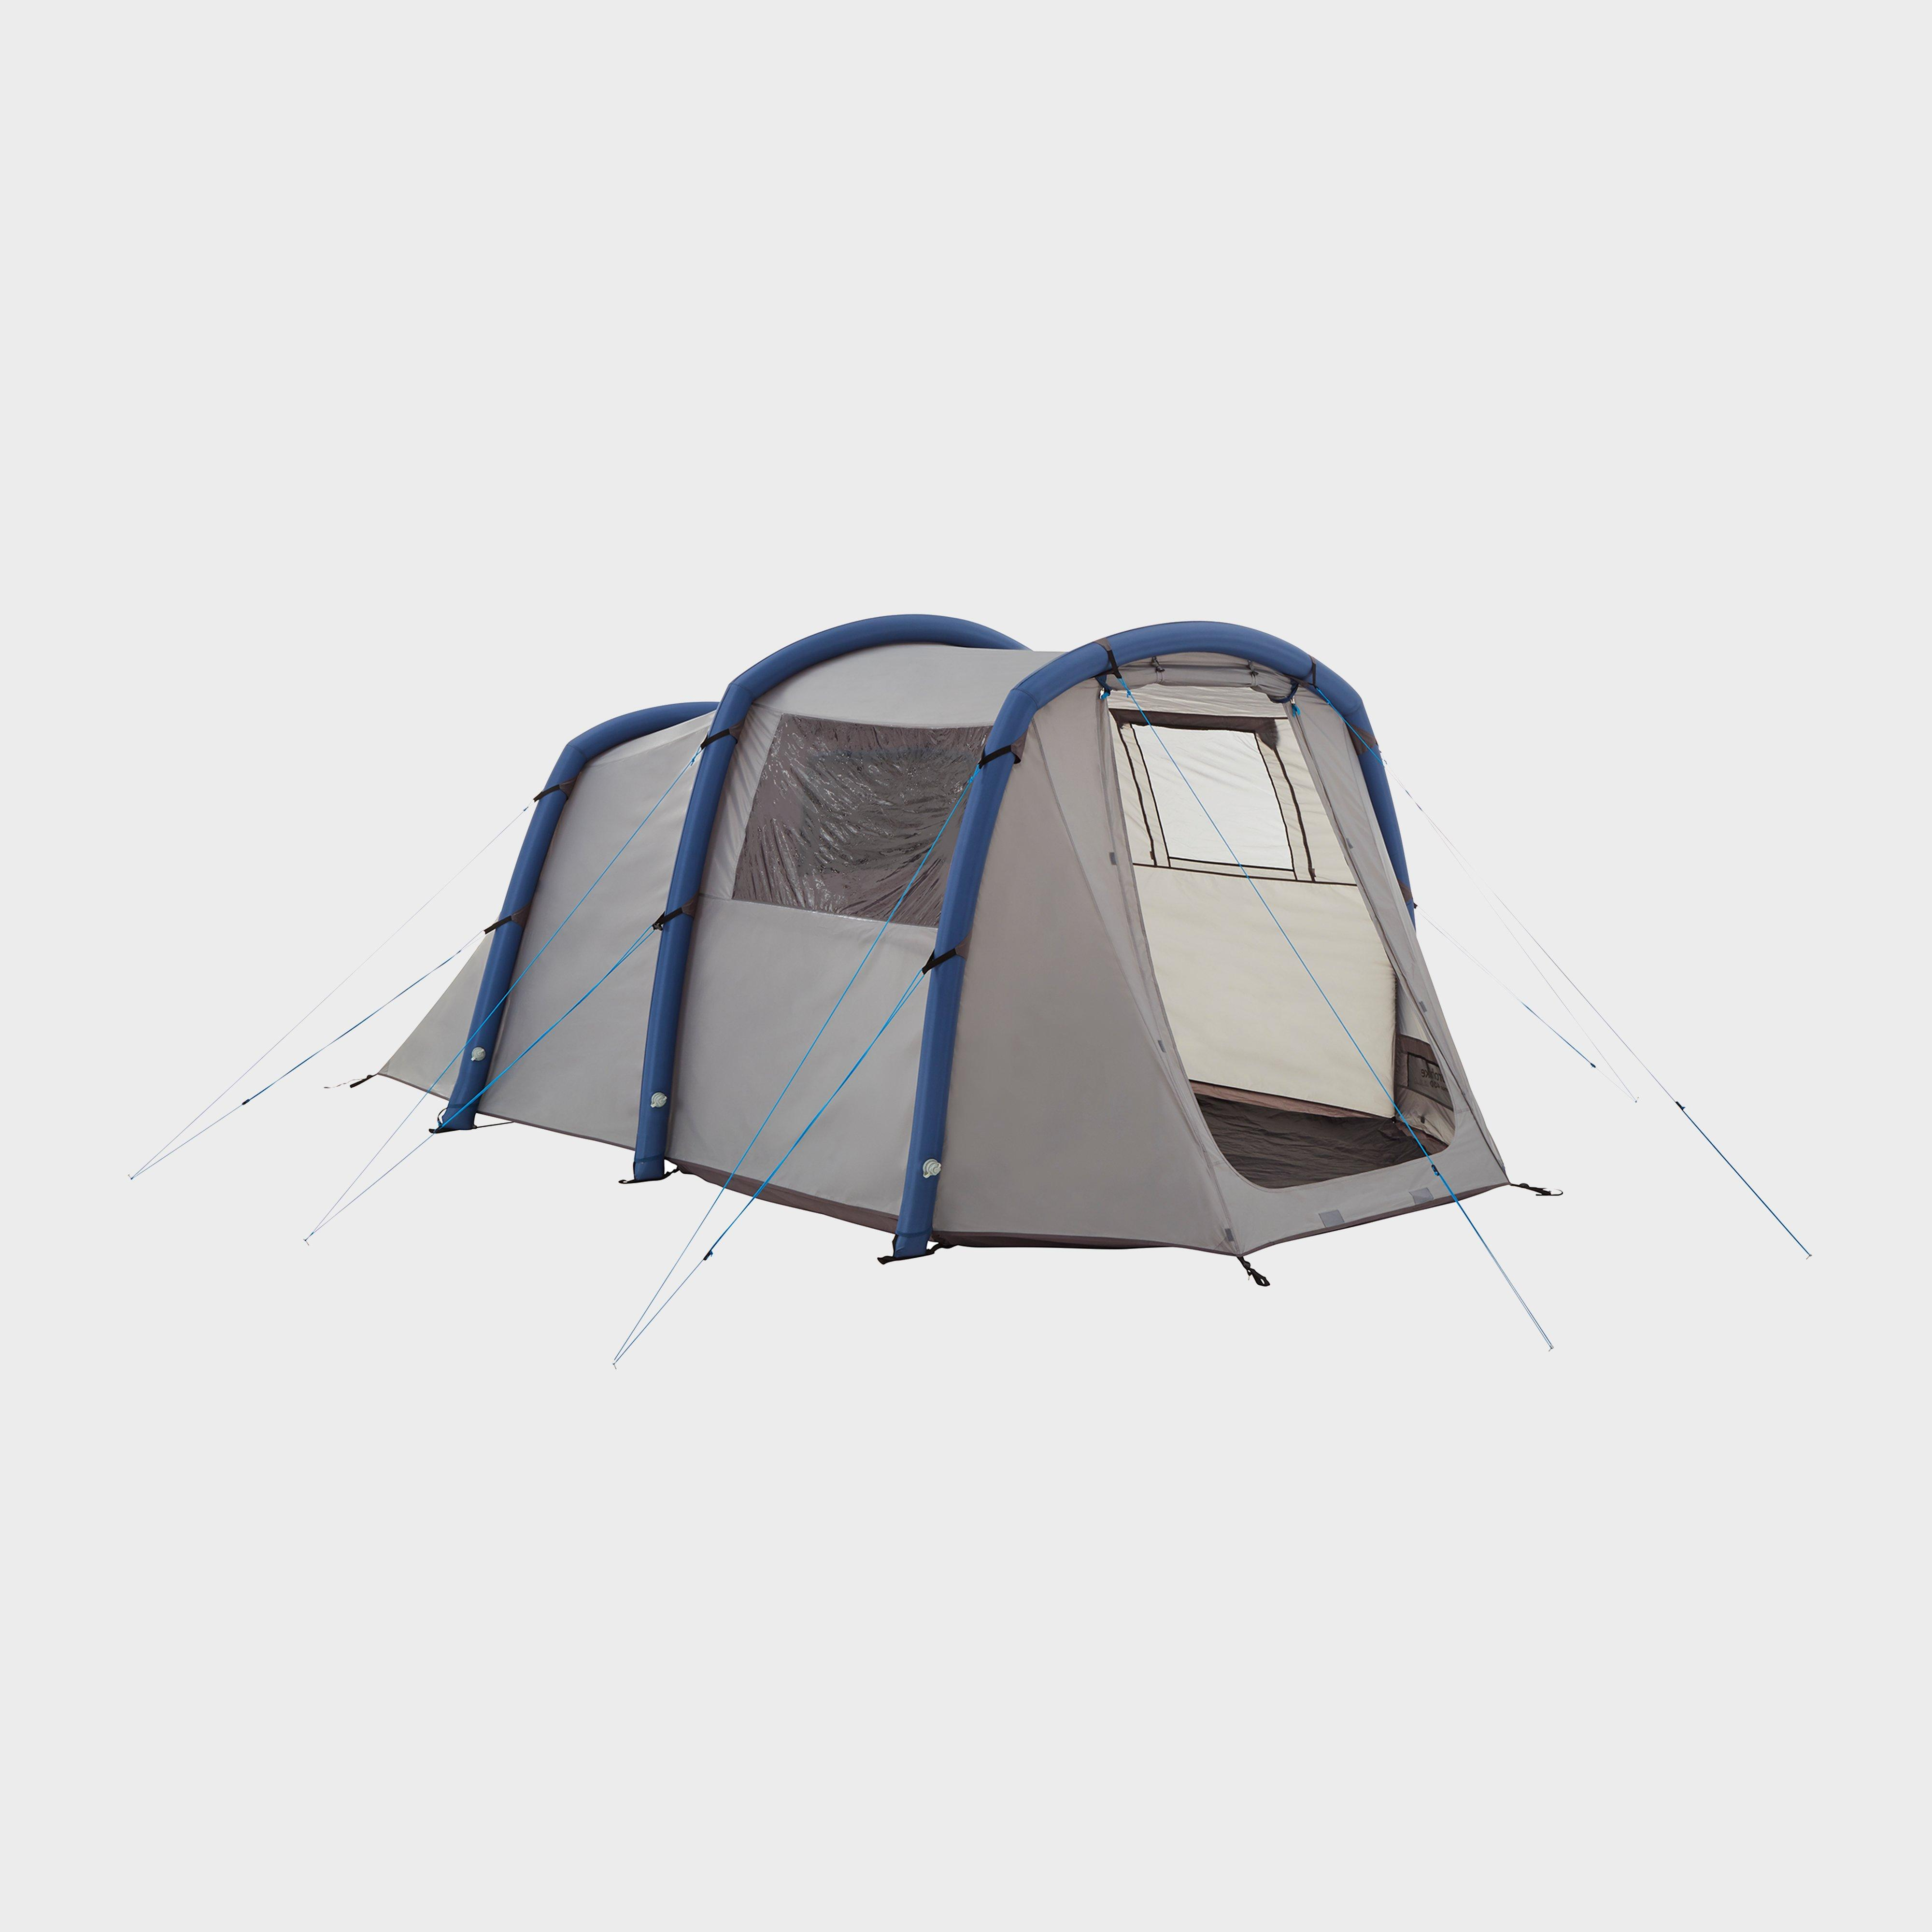 Airgo Air Genus 400 Inflatable Tent